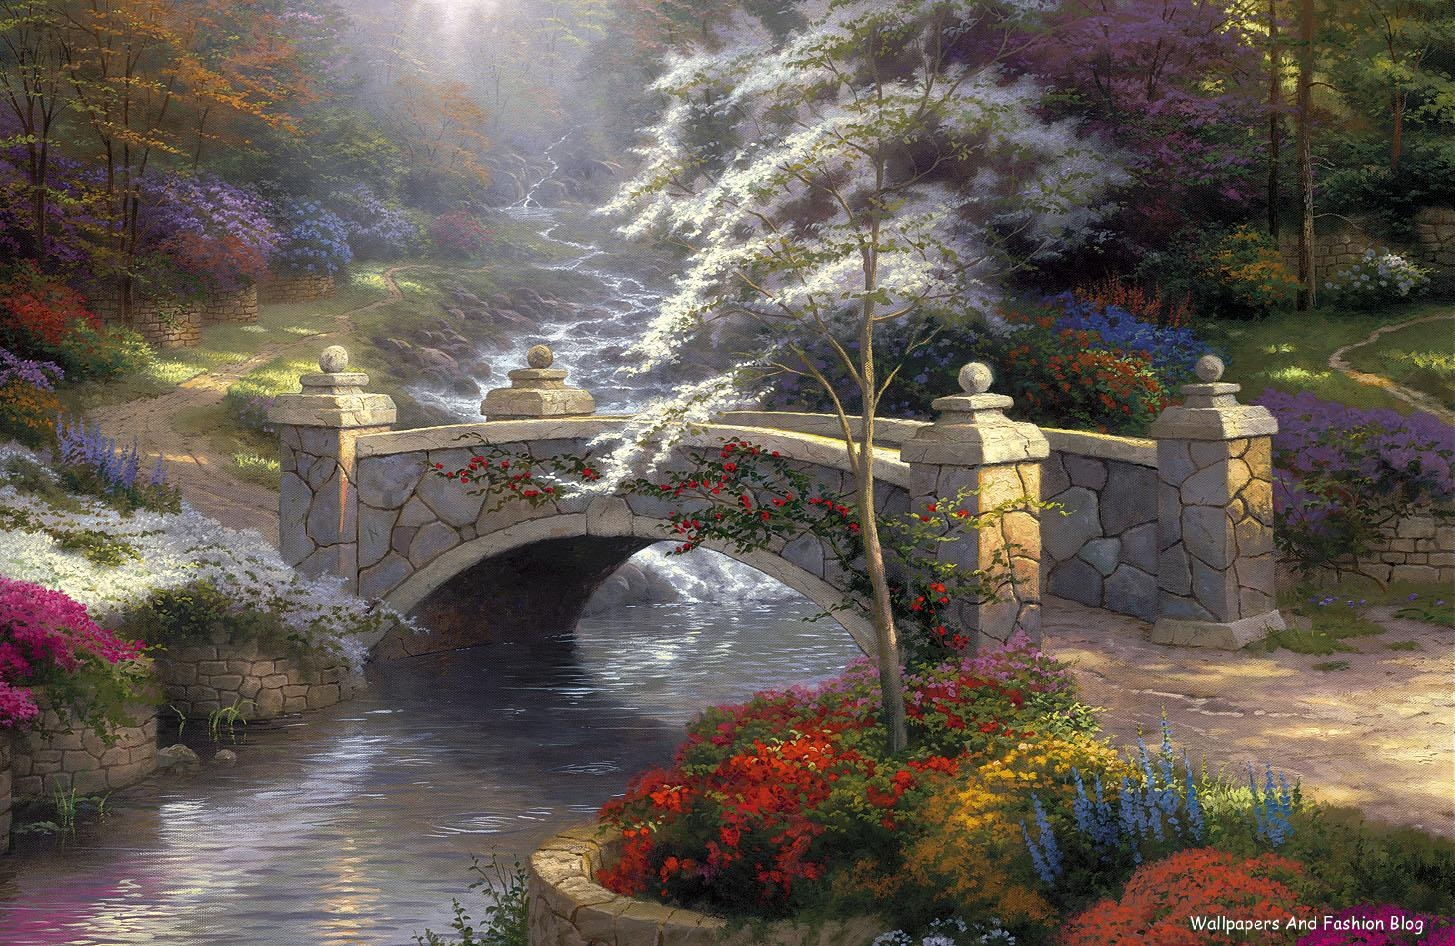 http://3.bp.blogspot.com/-vUcNyDRCLDU/Tpdtv1q4ujI/AAAAAAAACeI/ym9JMY5qZ48/s1600/artistic_and_creative_wallpapers_bridge.jpg